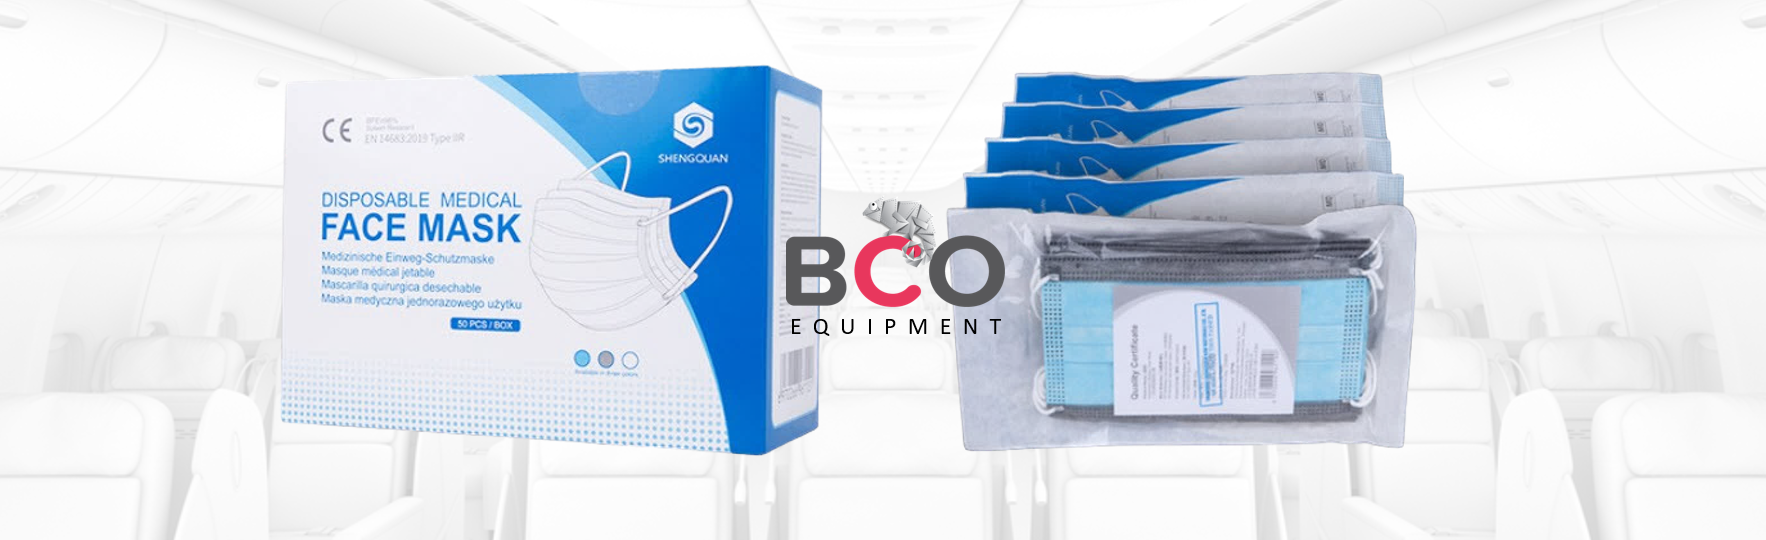 Illustration for: BCO Equipment (Face Masks): Discover our New Conditionning!